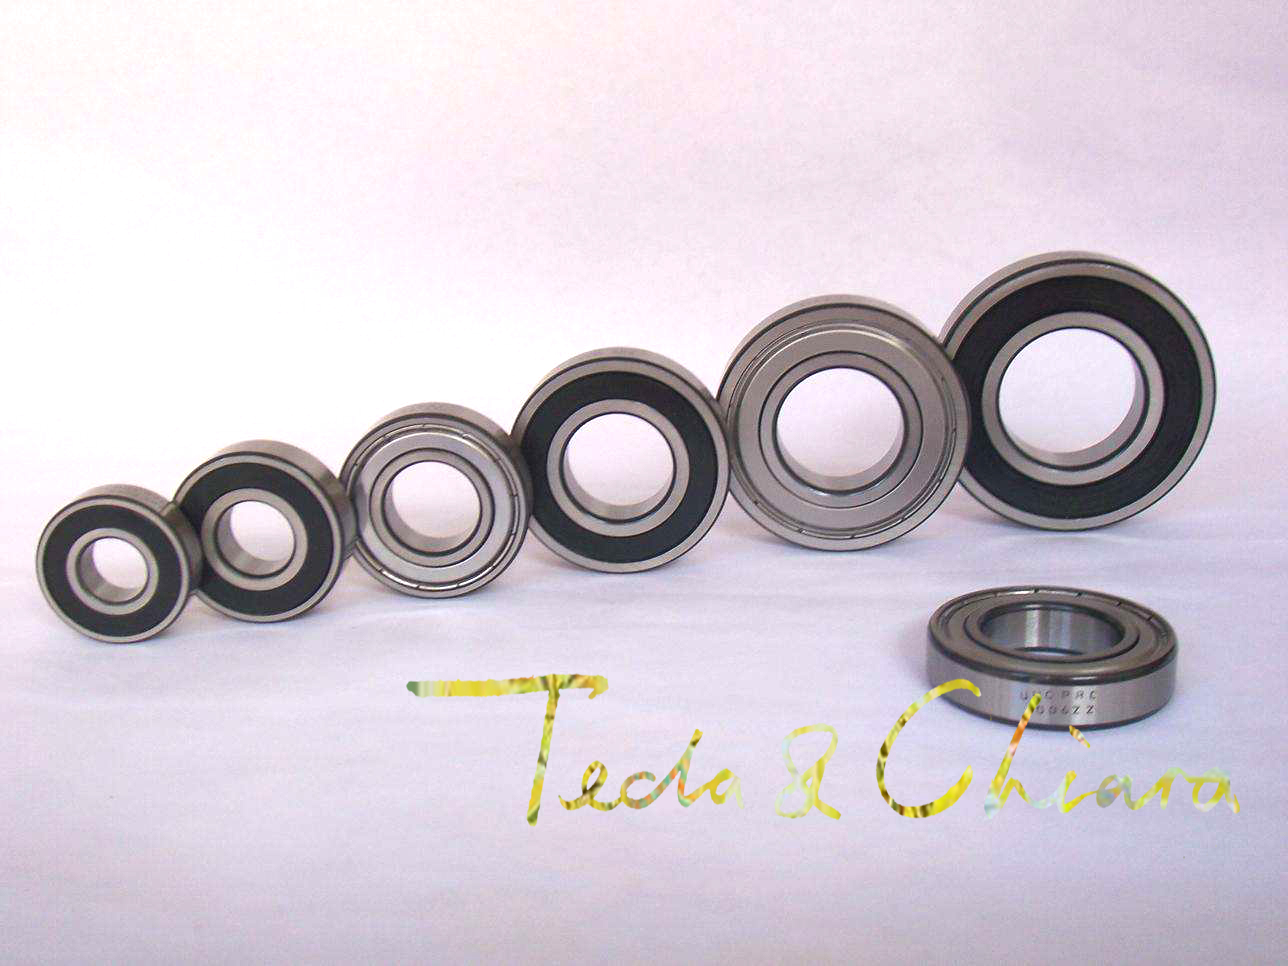 R8 R8ZZ R8RS R8-2Z R8Z R8-2RS ZZ RS RZ 2RZ Deep Groove Ball Bearings 12.7 x 28.575 x 7.938mm 1/2 x 1 1/8 x 5/16 High Quality 瞬零4